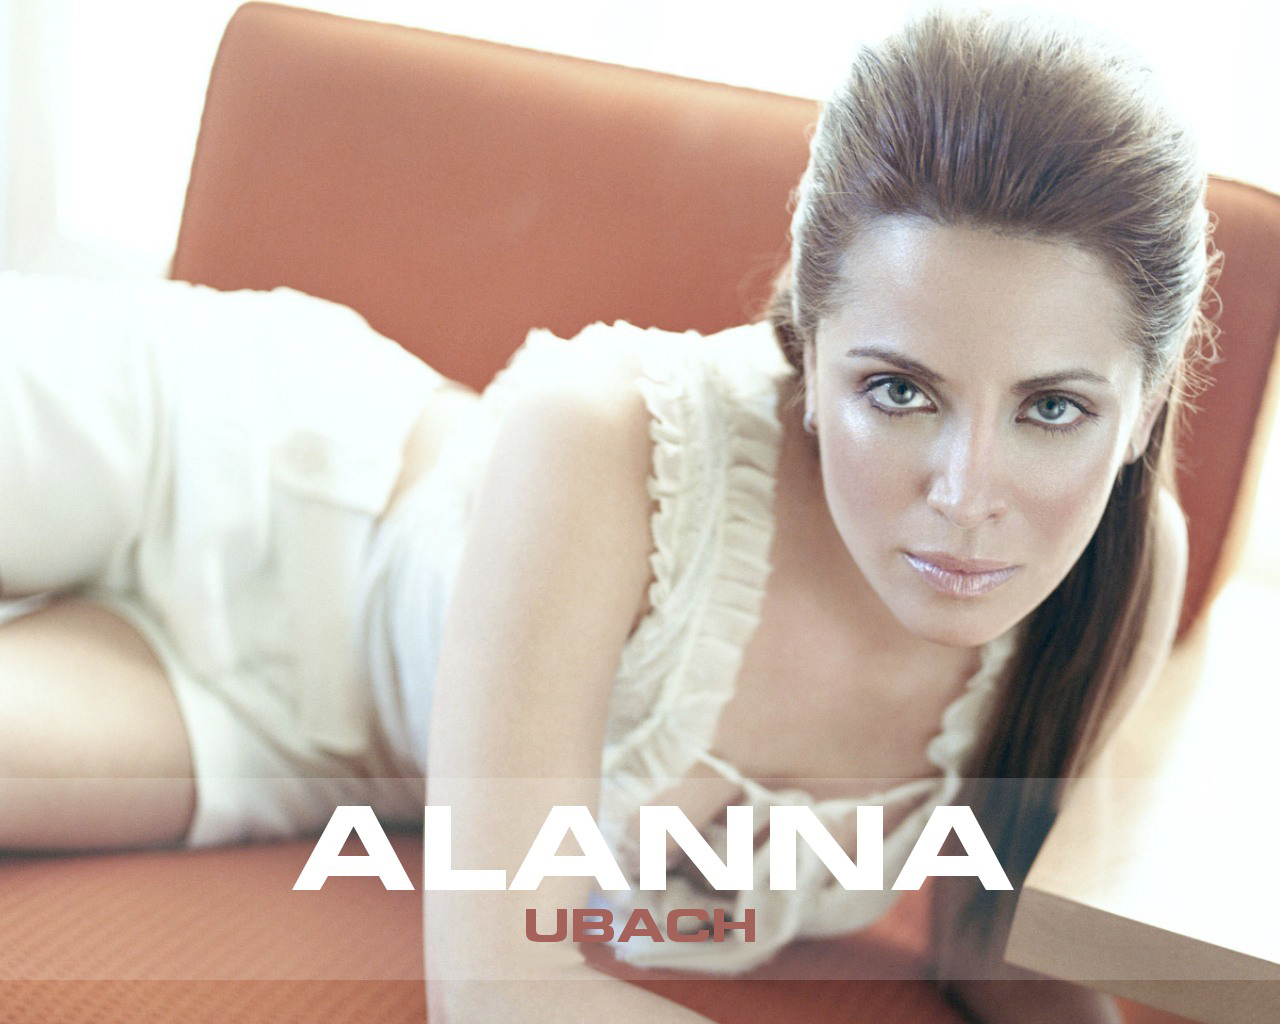 alanna ubach movies and tv shows